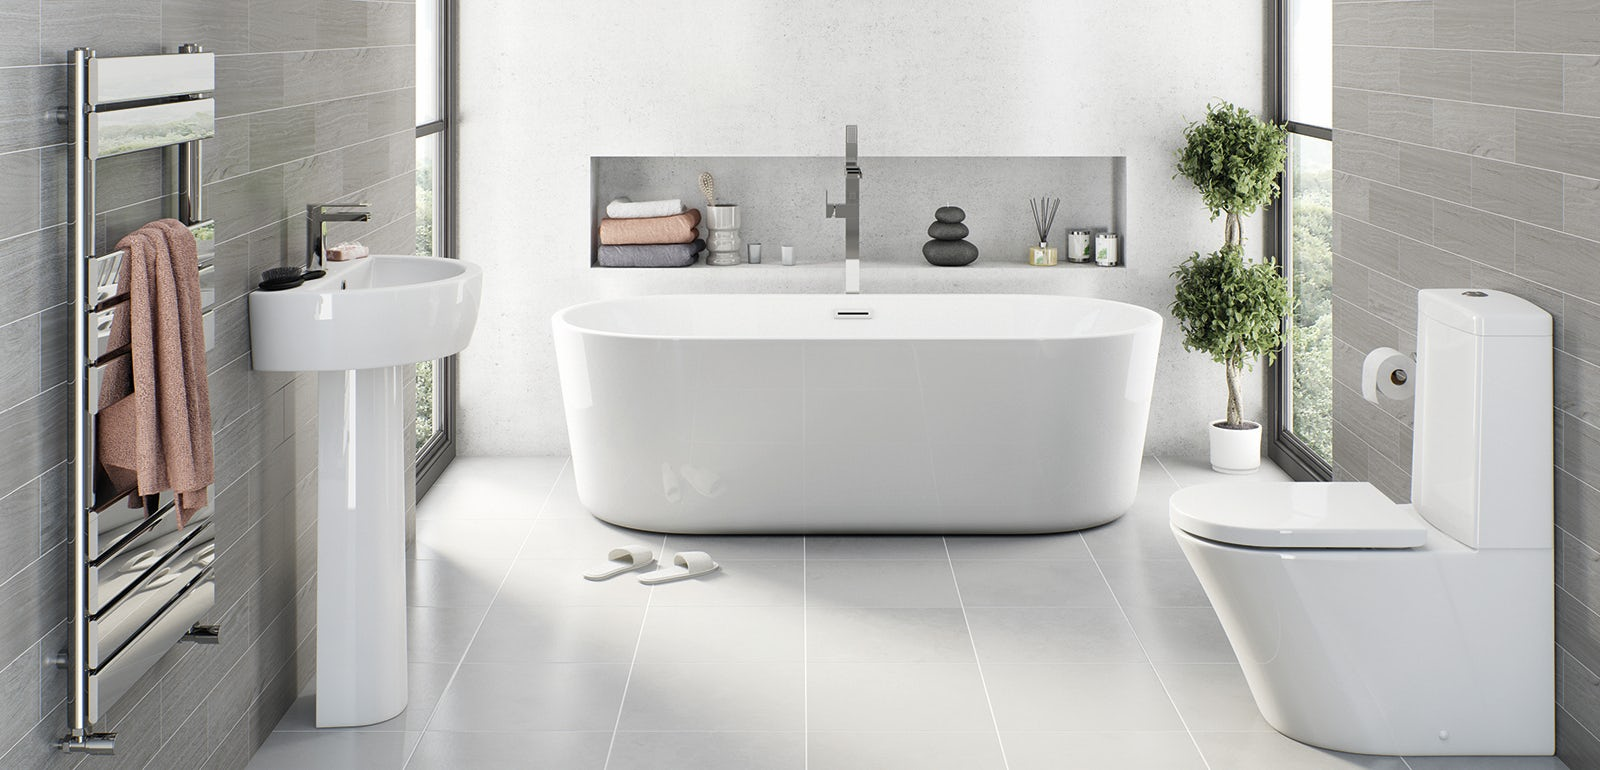 Win a bathroom makeover worth up to £2,000!